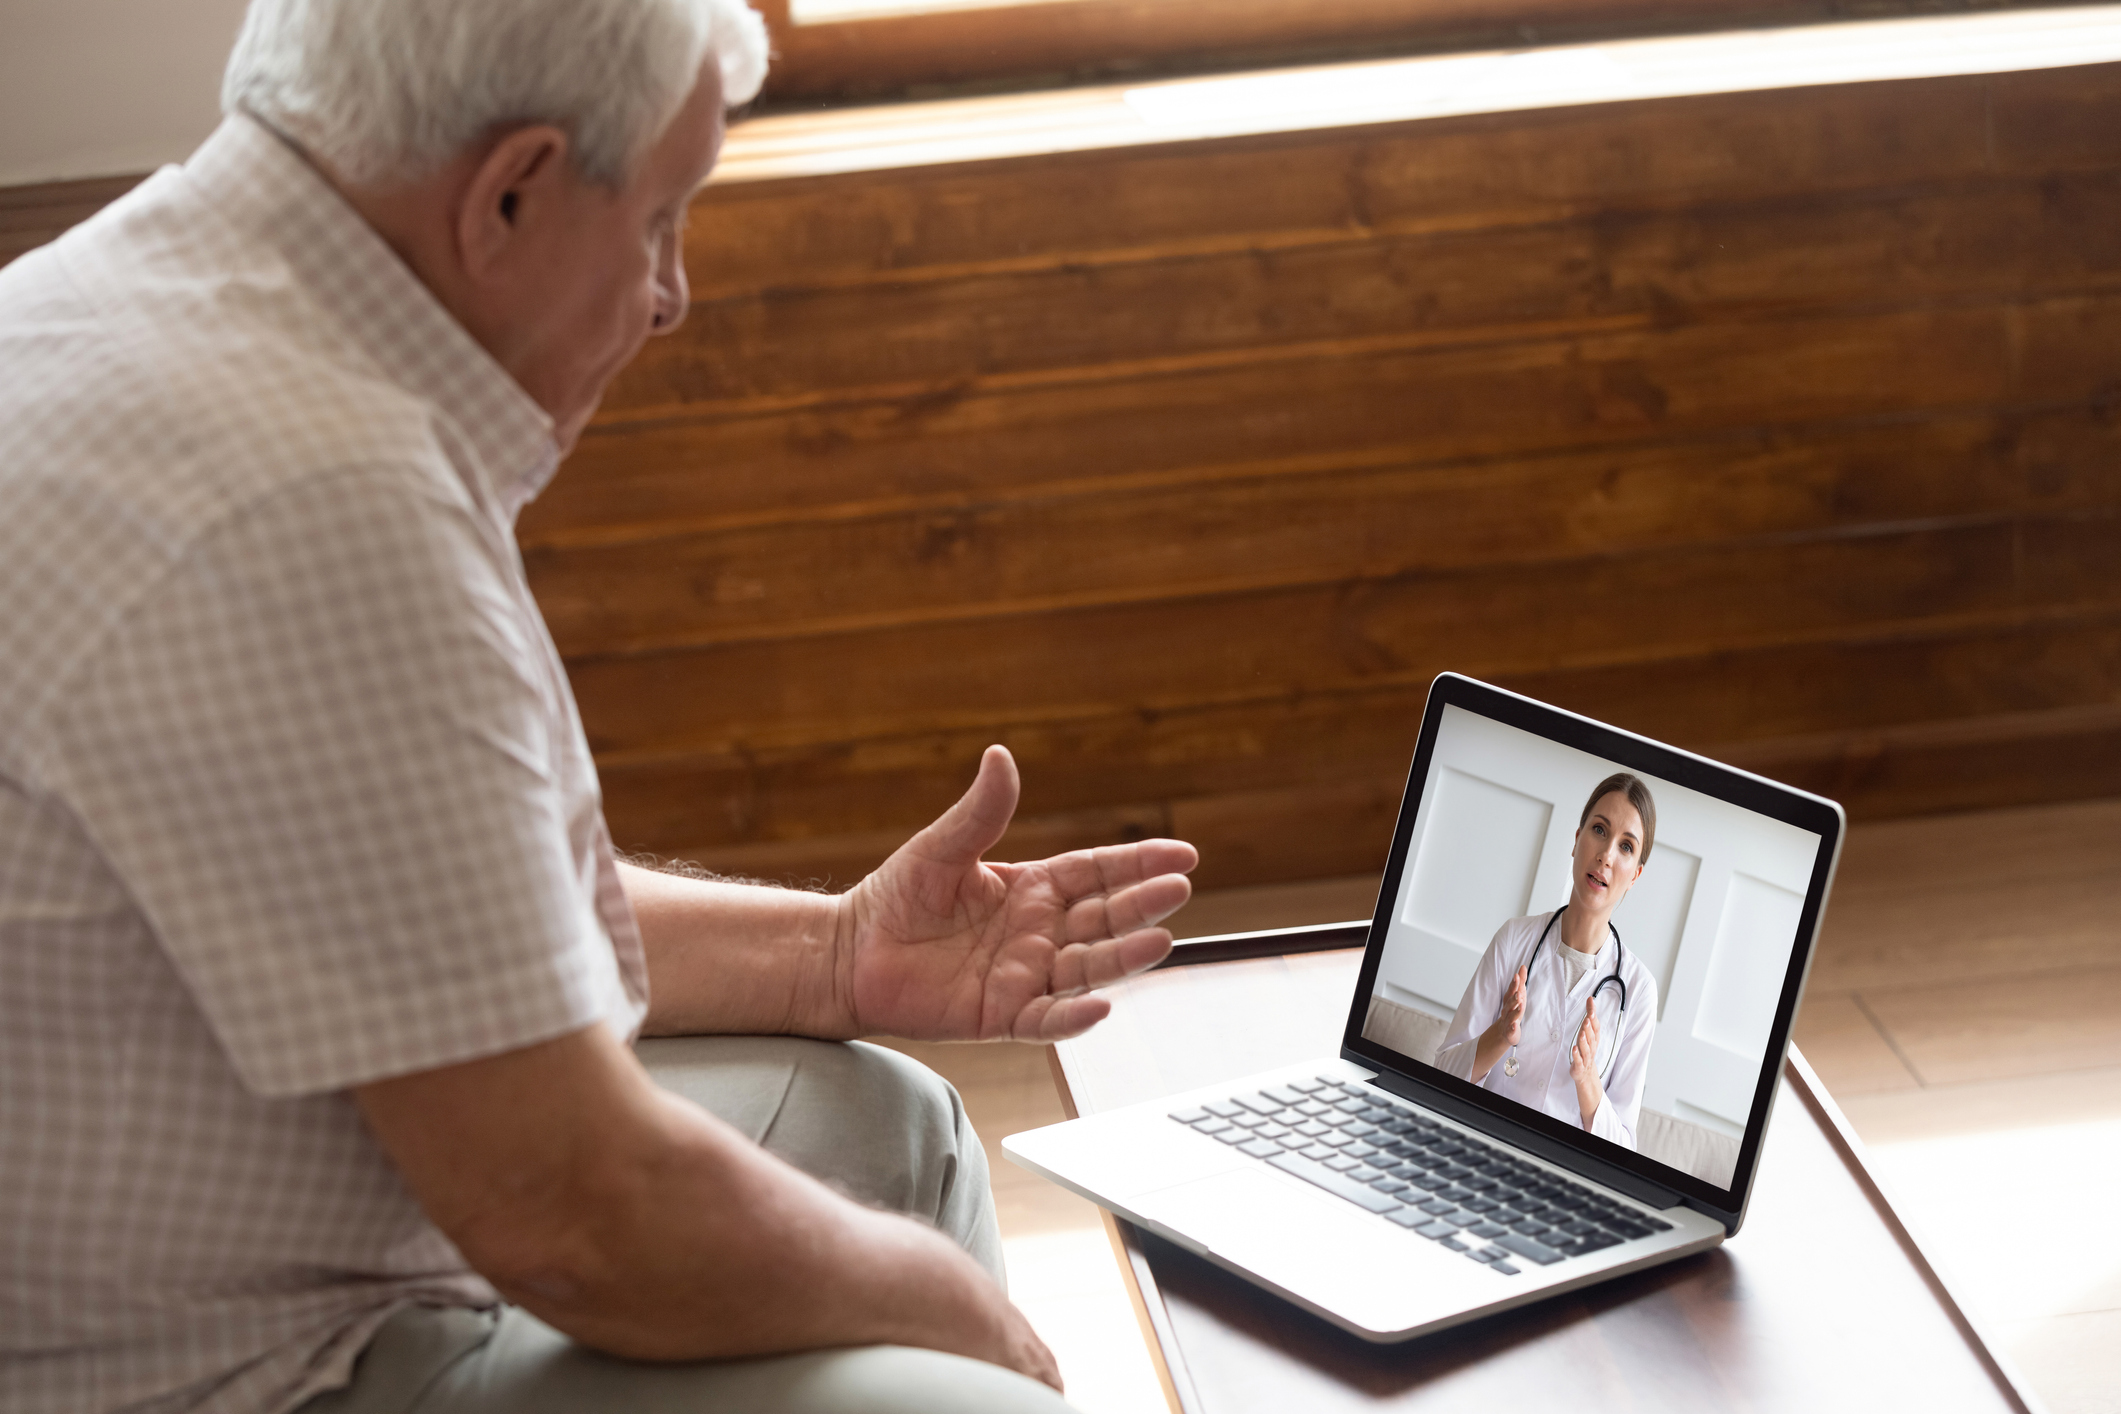 Focused older 80s patient consulting with doctor via video call. Image credit: iStock